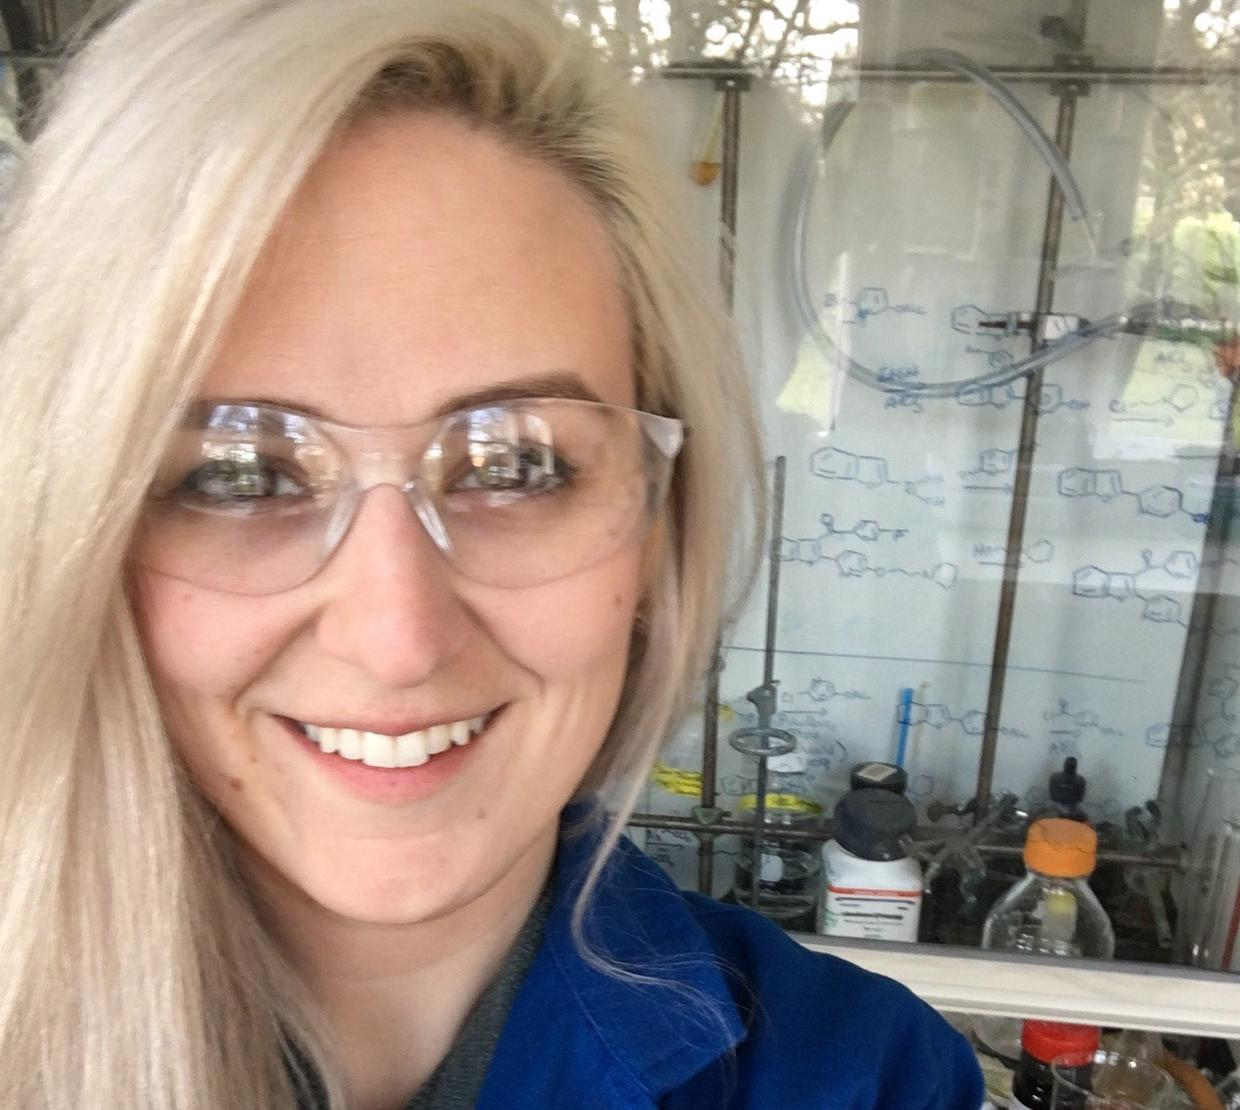 Blonde woman with clear eye protection smiling in a laboratory setting